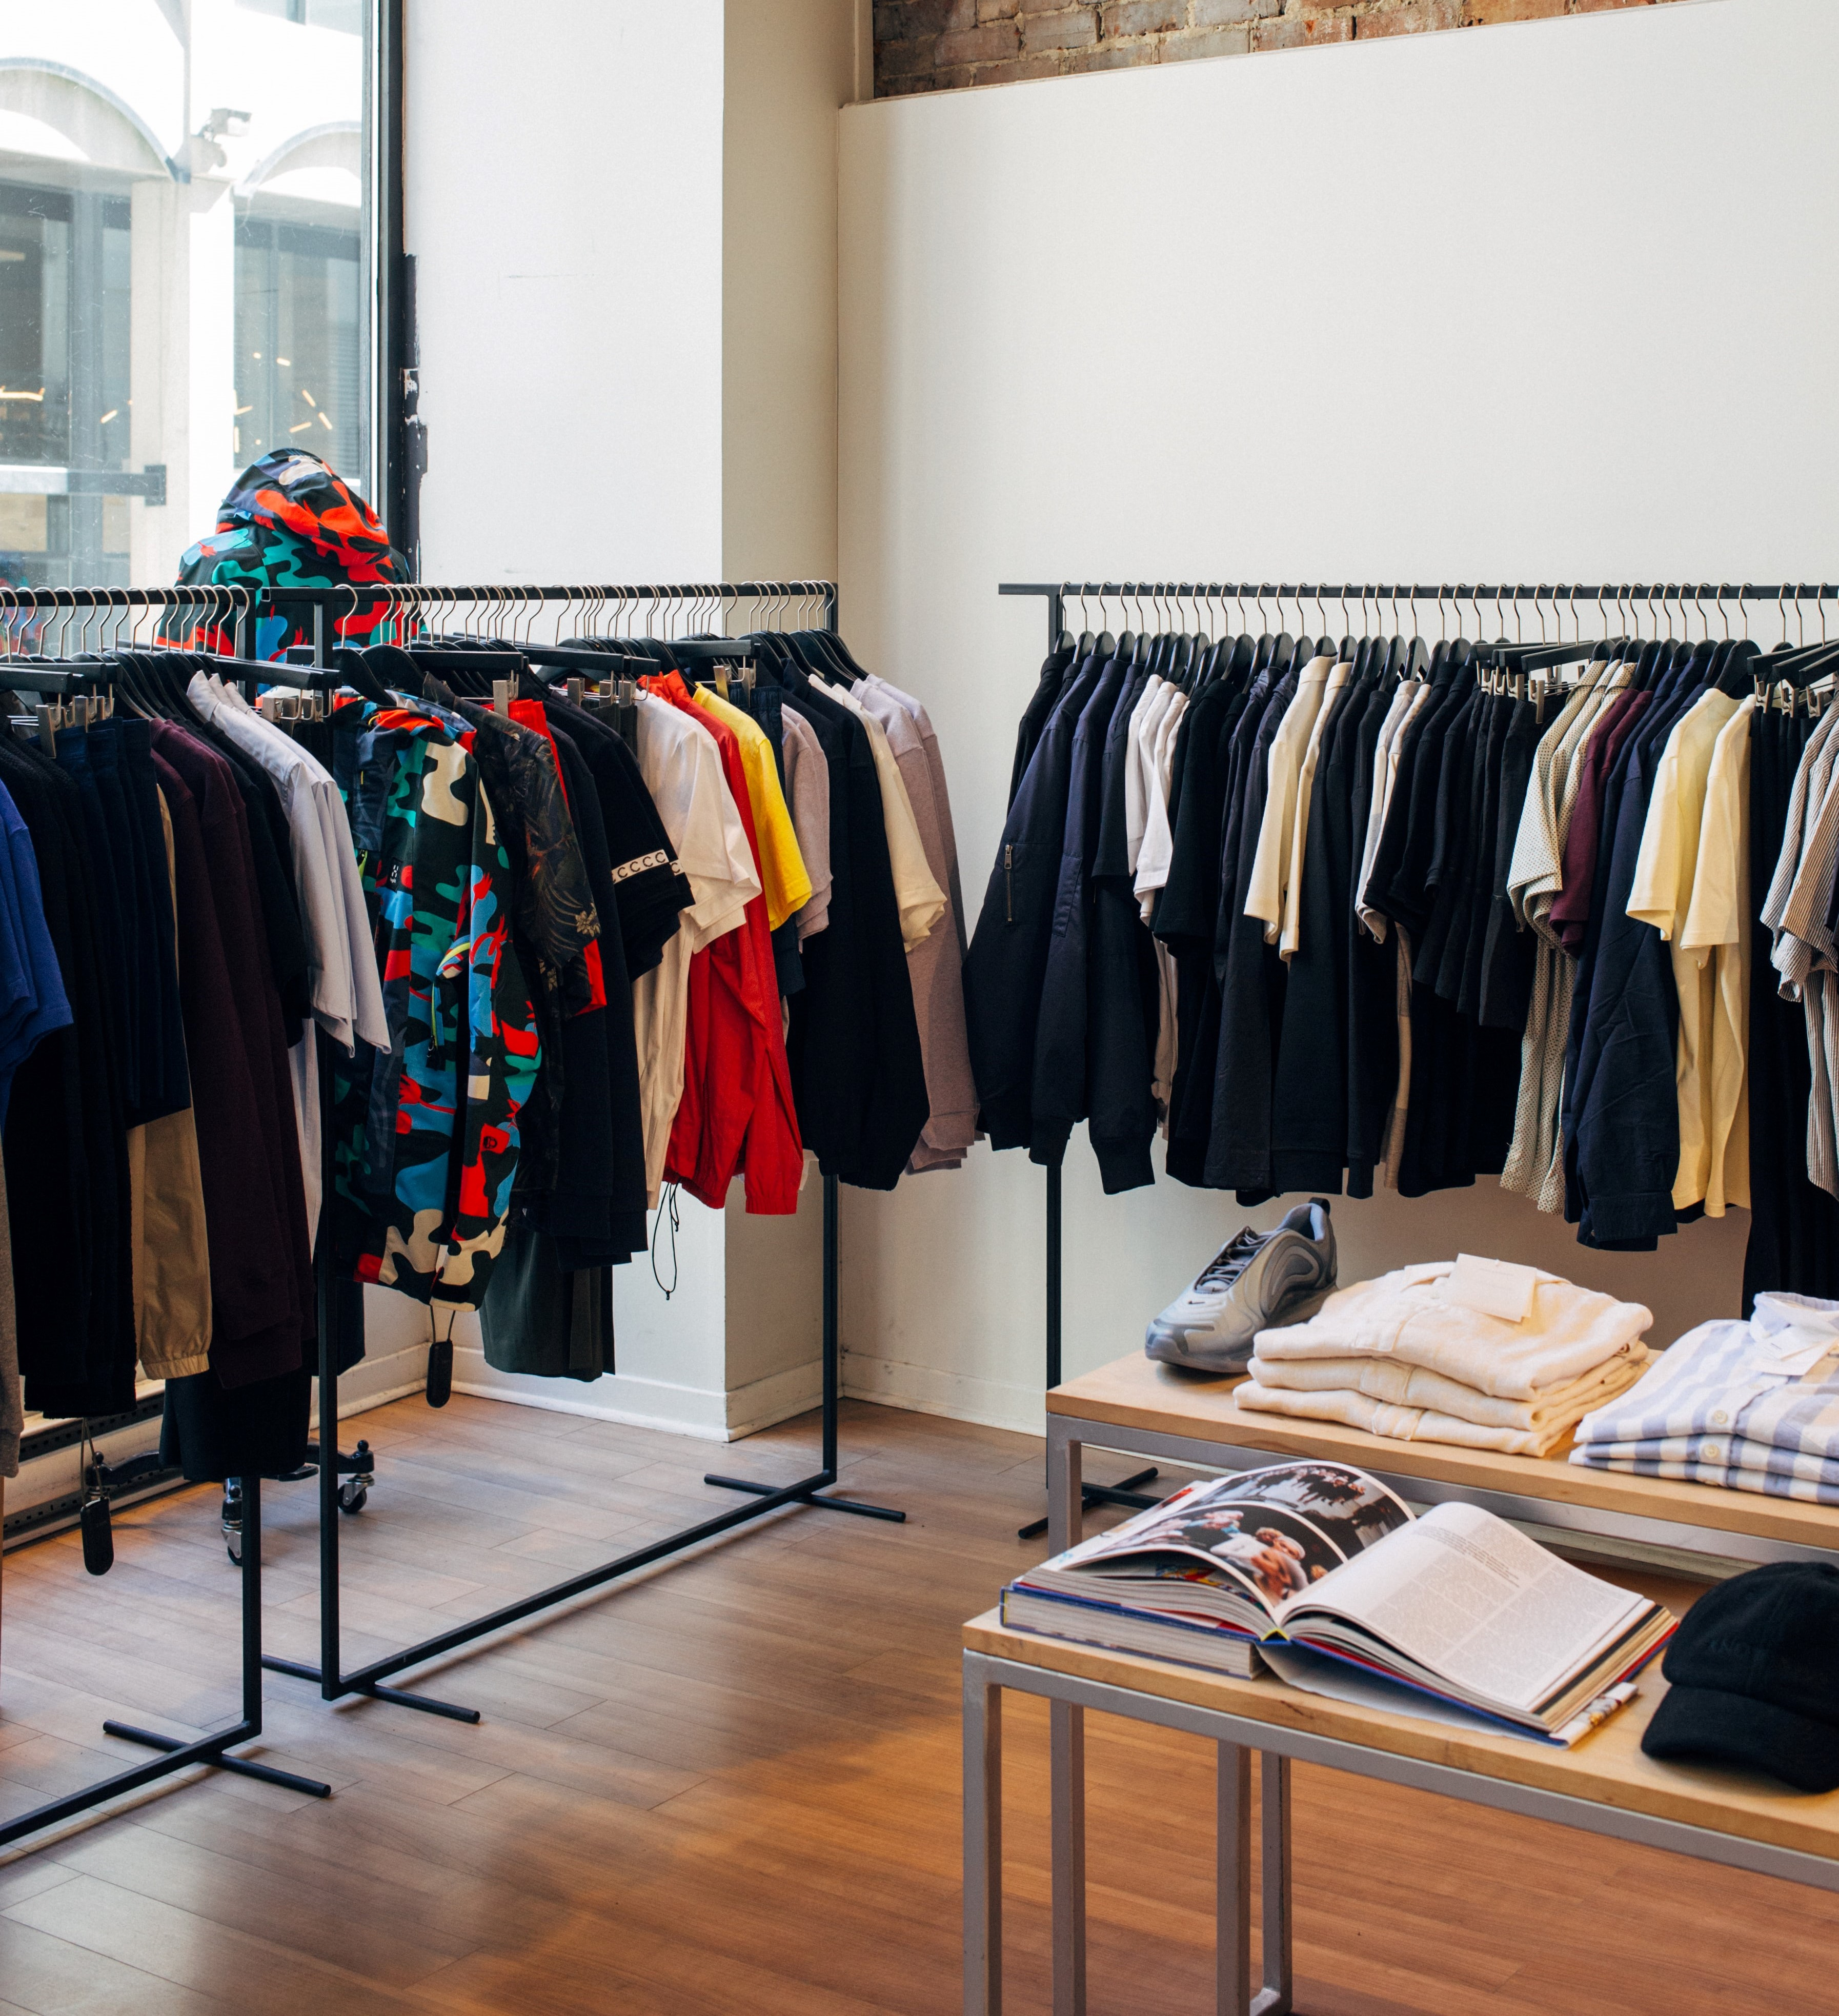 assorted-color clothes hanging on metal racks Photo by Charles Deluvio on Unsplash